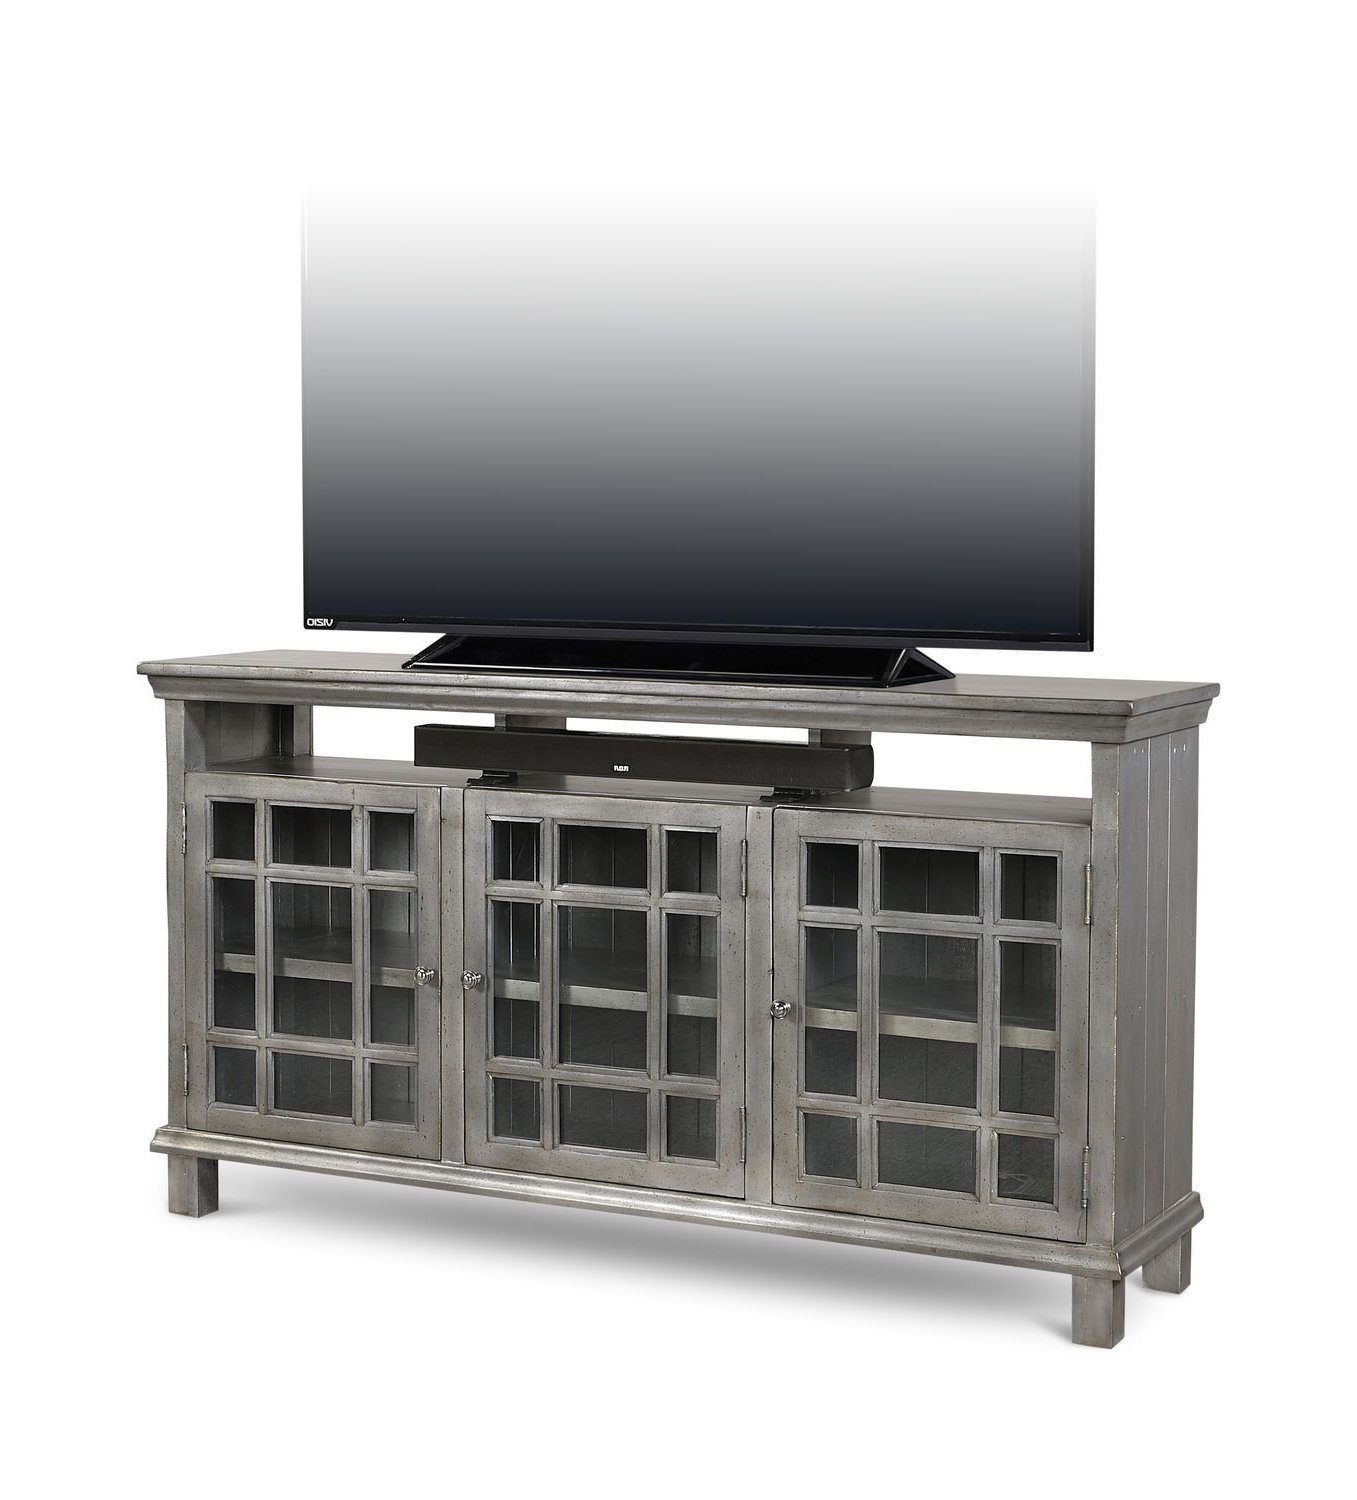 Preferences Metallic 65″ Media Console | Boho Chic | Pinterest With Regard To Sinclair Grey 54 Inch Tv Stands (View 10 of 20)